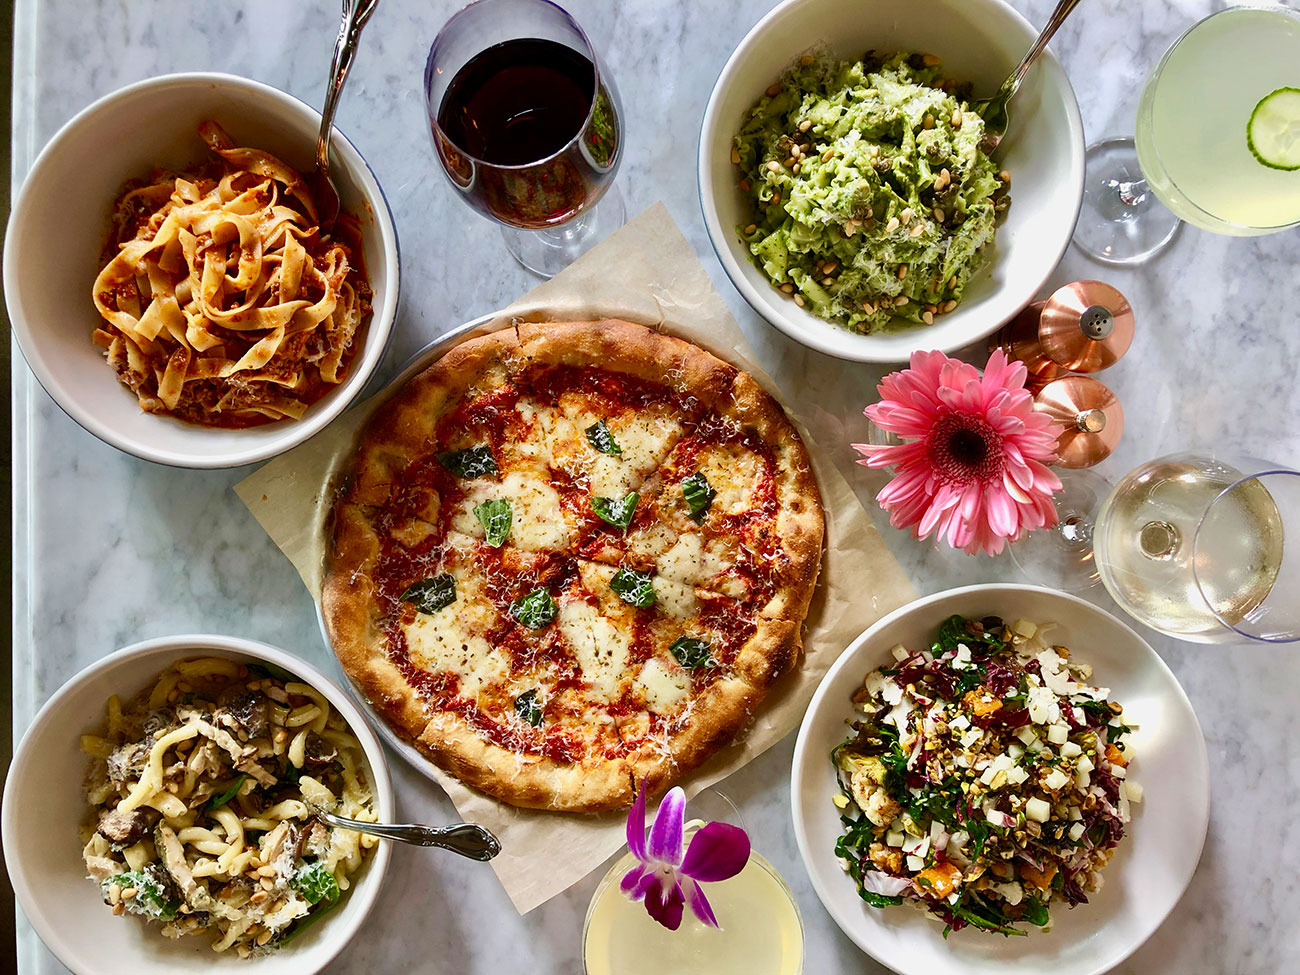 North Italia, The Cheesecake Factory-owned pizza and pasta chain, opens November 13 at South End's Railyard